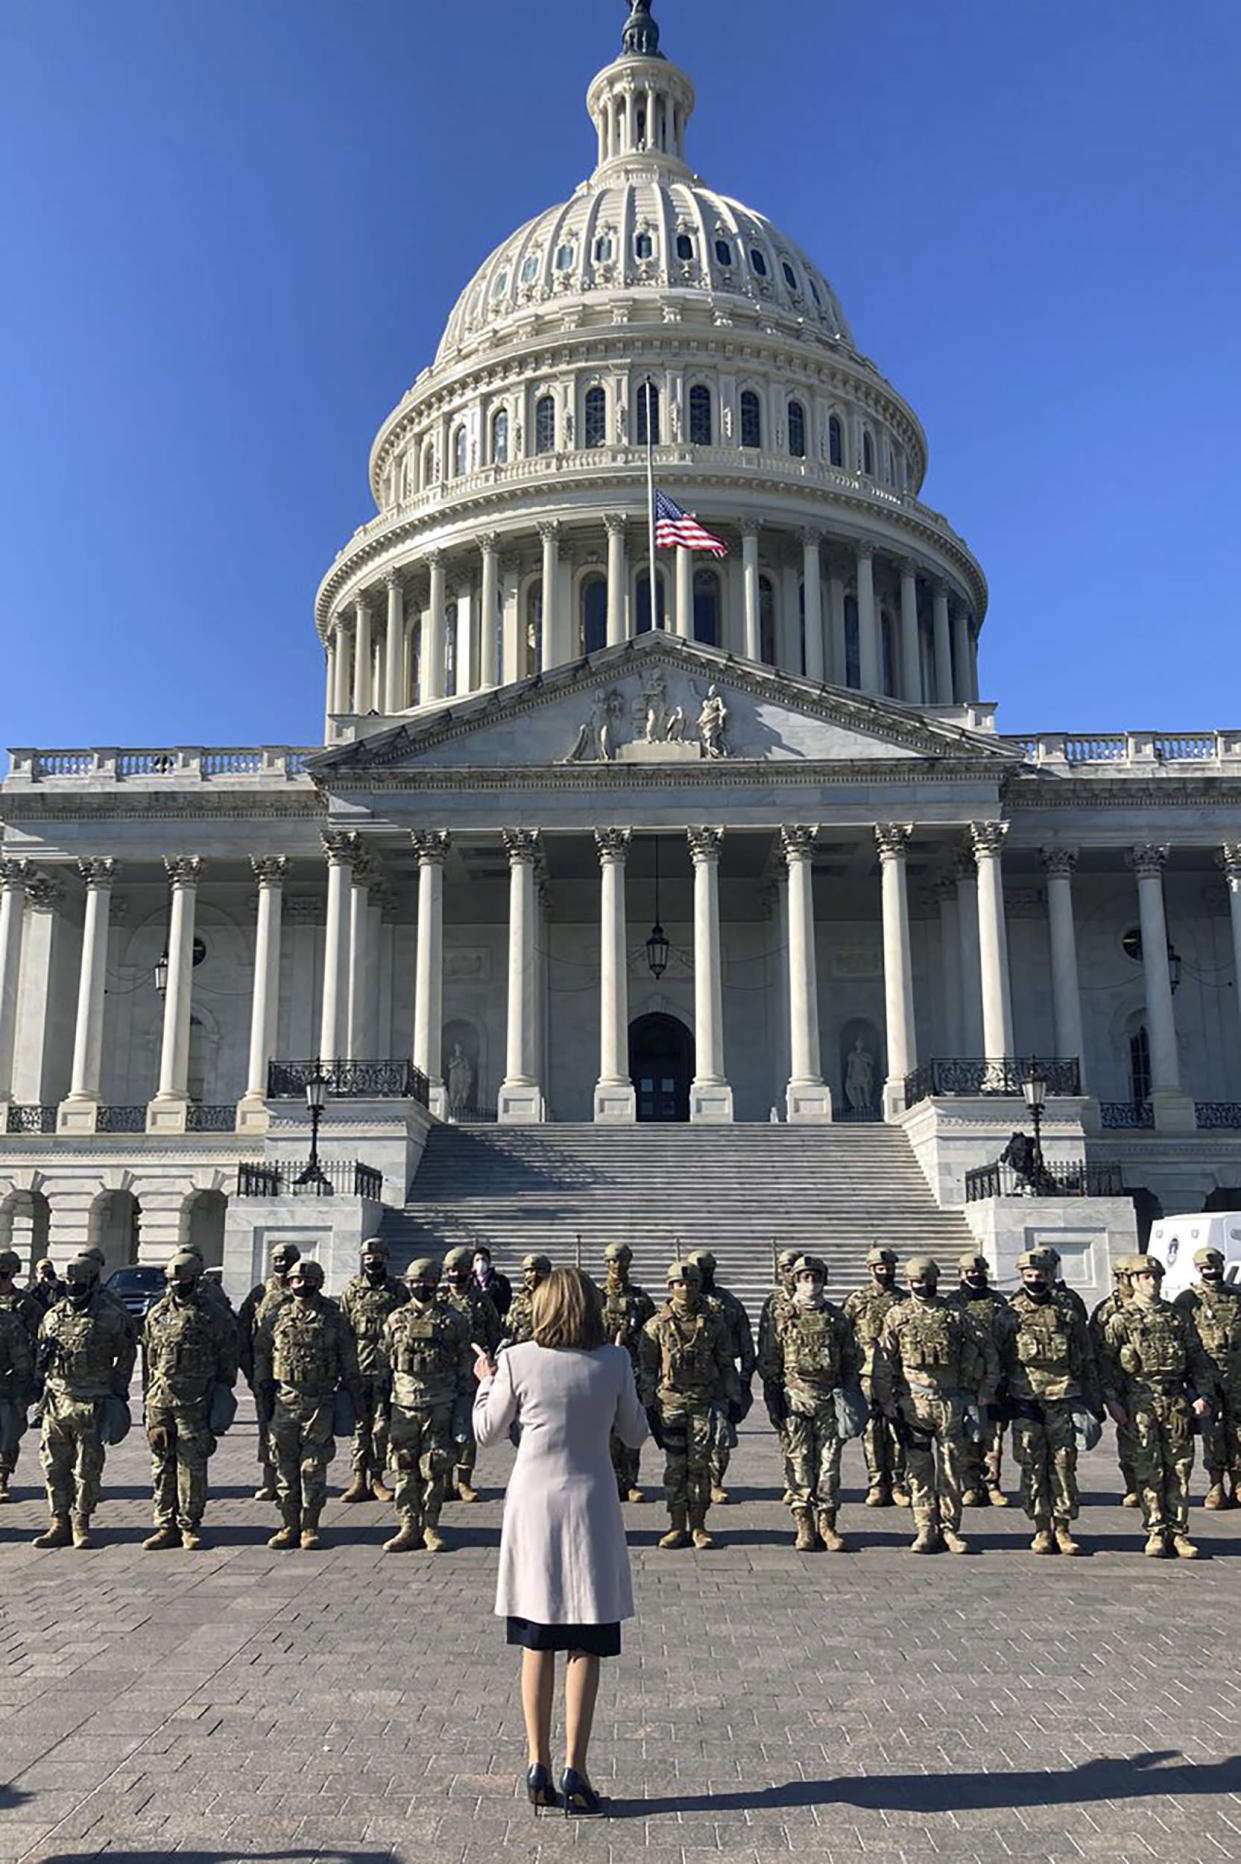 This image released by the Speaker of the House Nancy Pelosi's Office, Pelosi speaks to National Guard troops outside the U.S. Capitol on Wednesday, Jan. 13, 2021, in Washington. (Drew Hammill/Speaker of the House Nancy Pelosi's Office via AP)